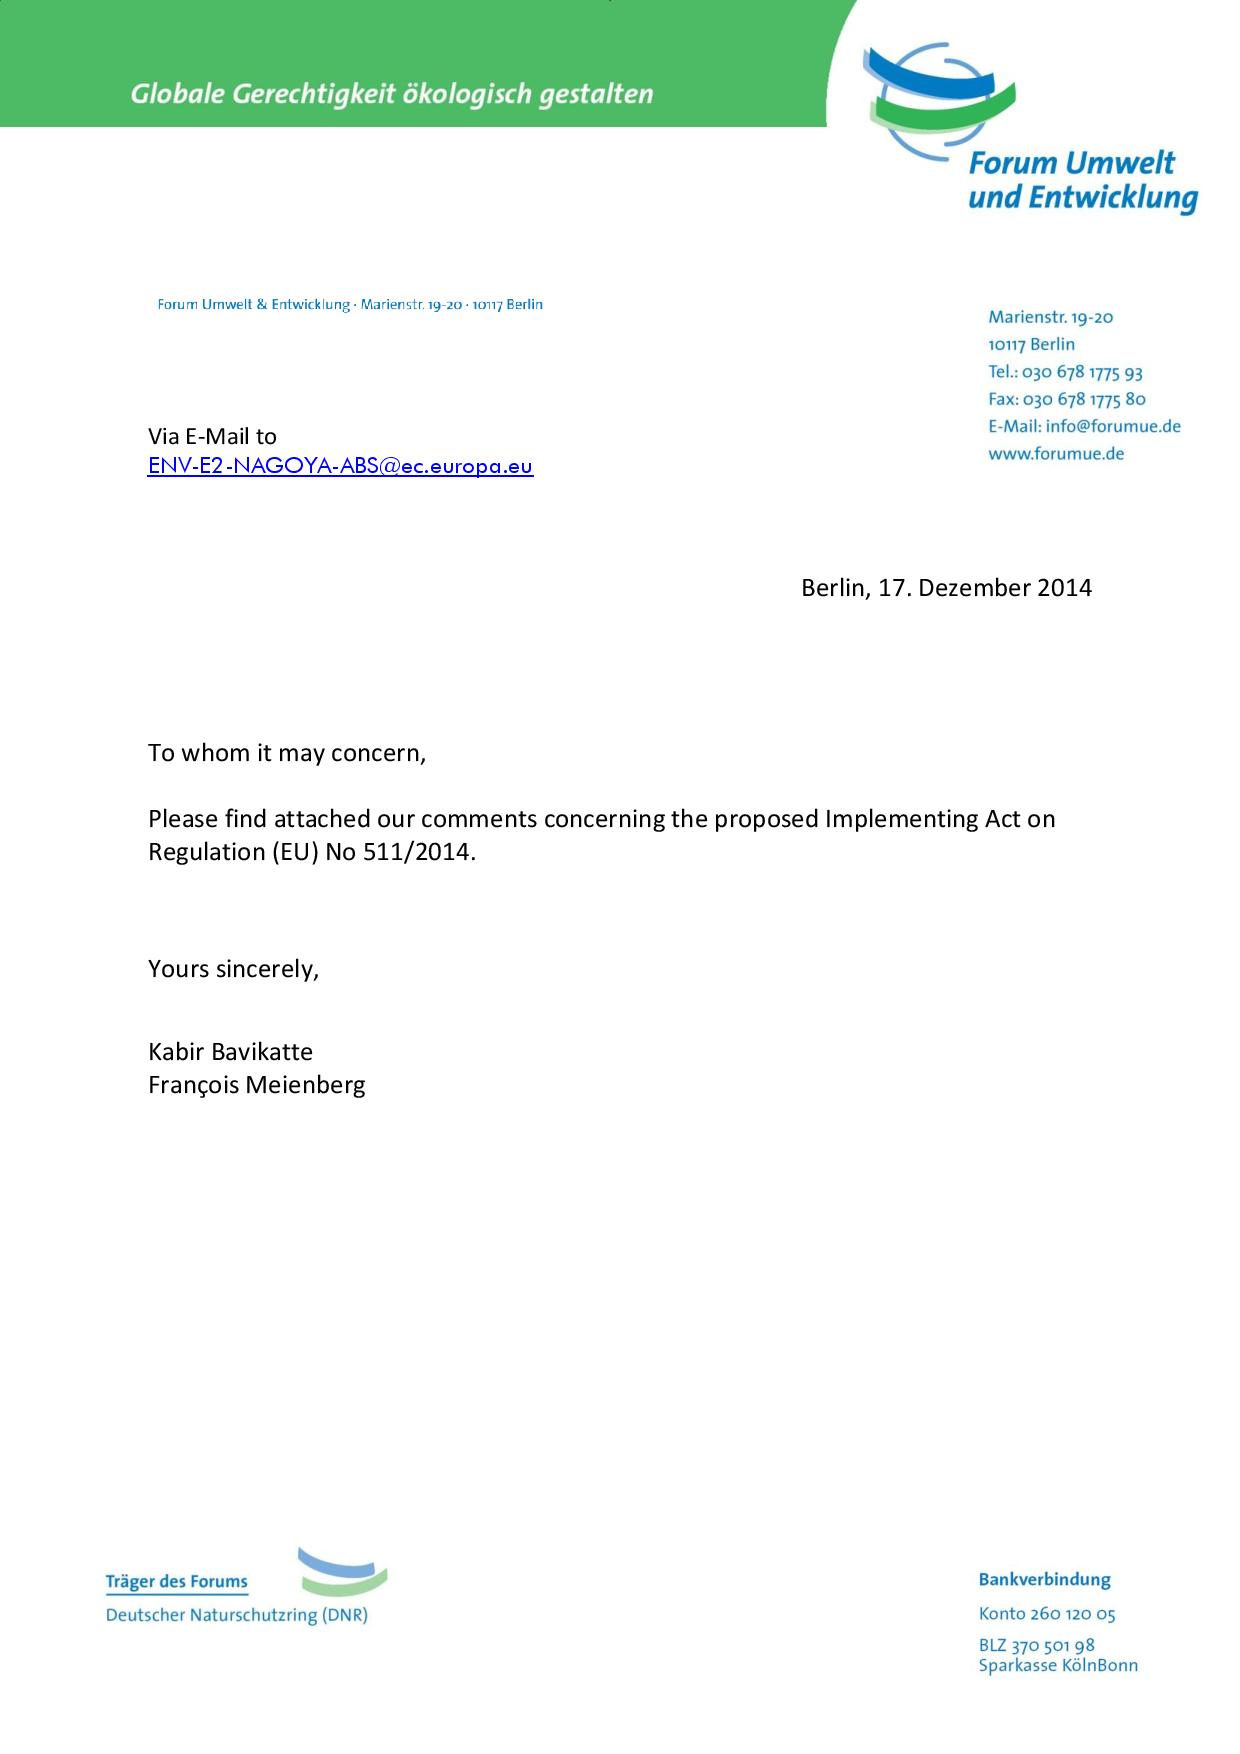 Letter_to_EU_concerning_EU_ABS_Implementing_Acts_01-page-001